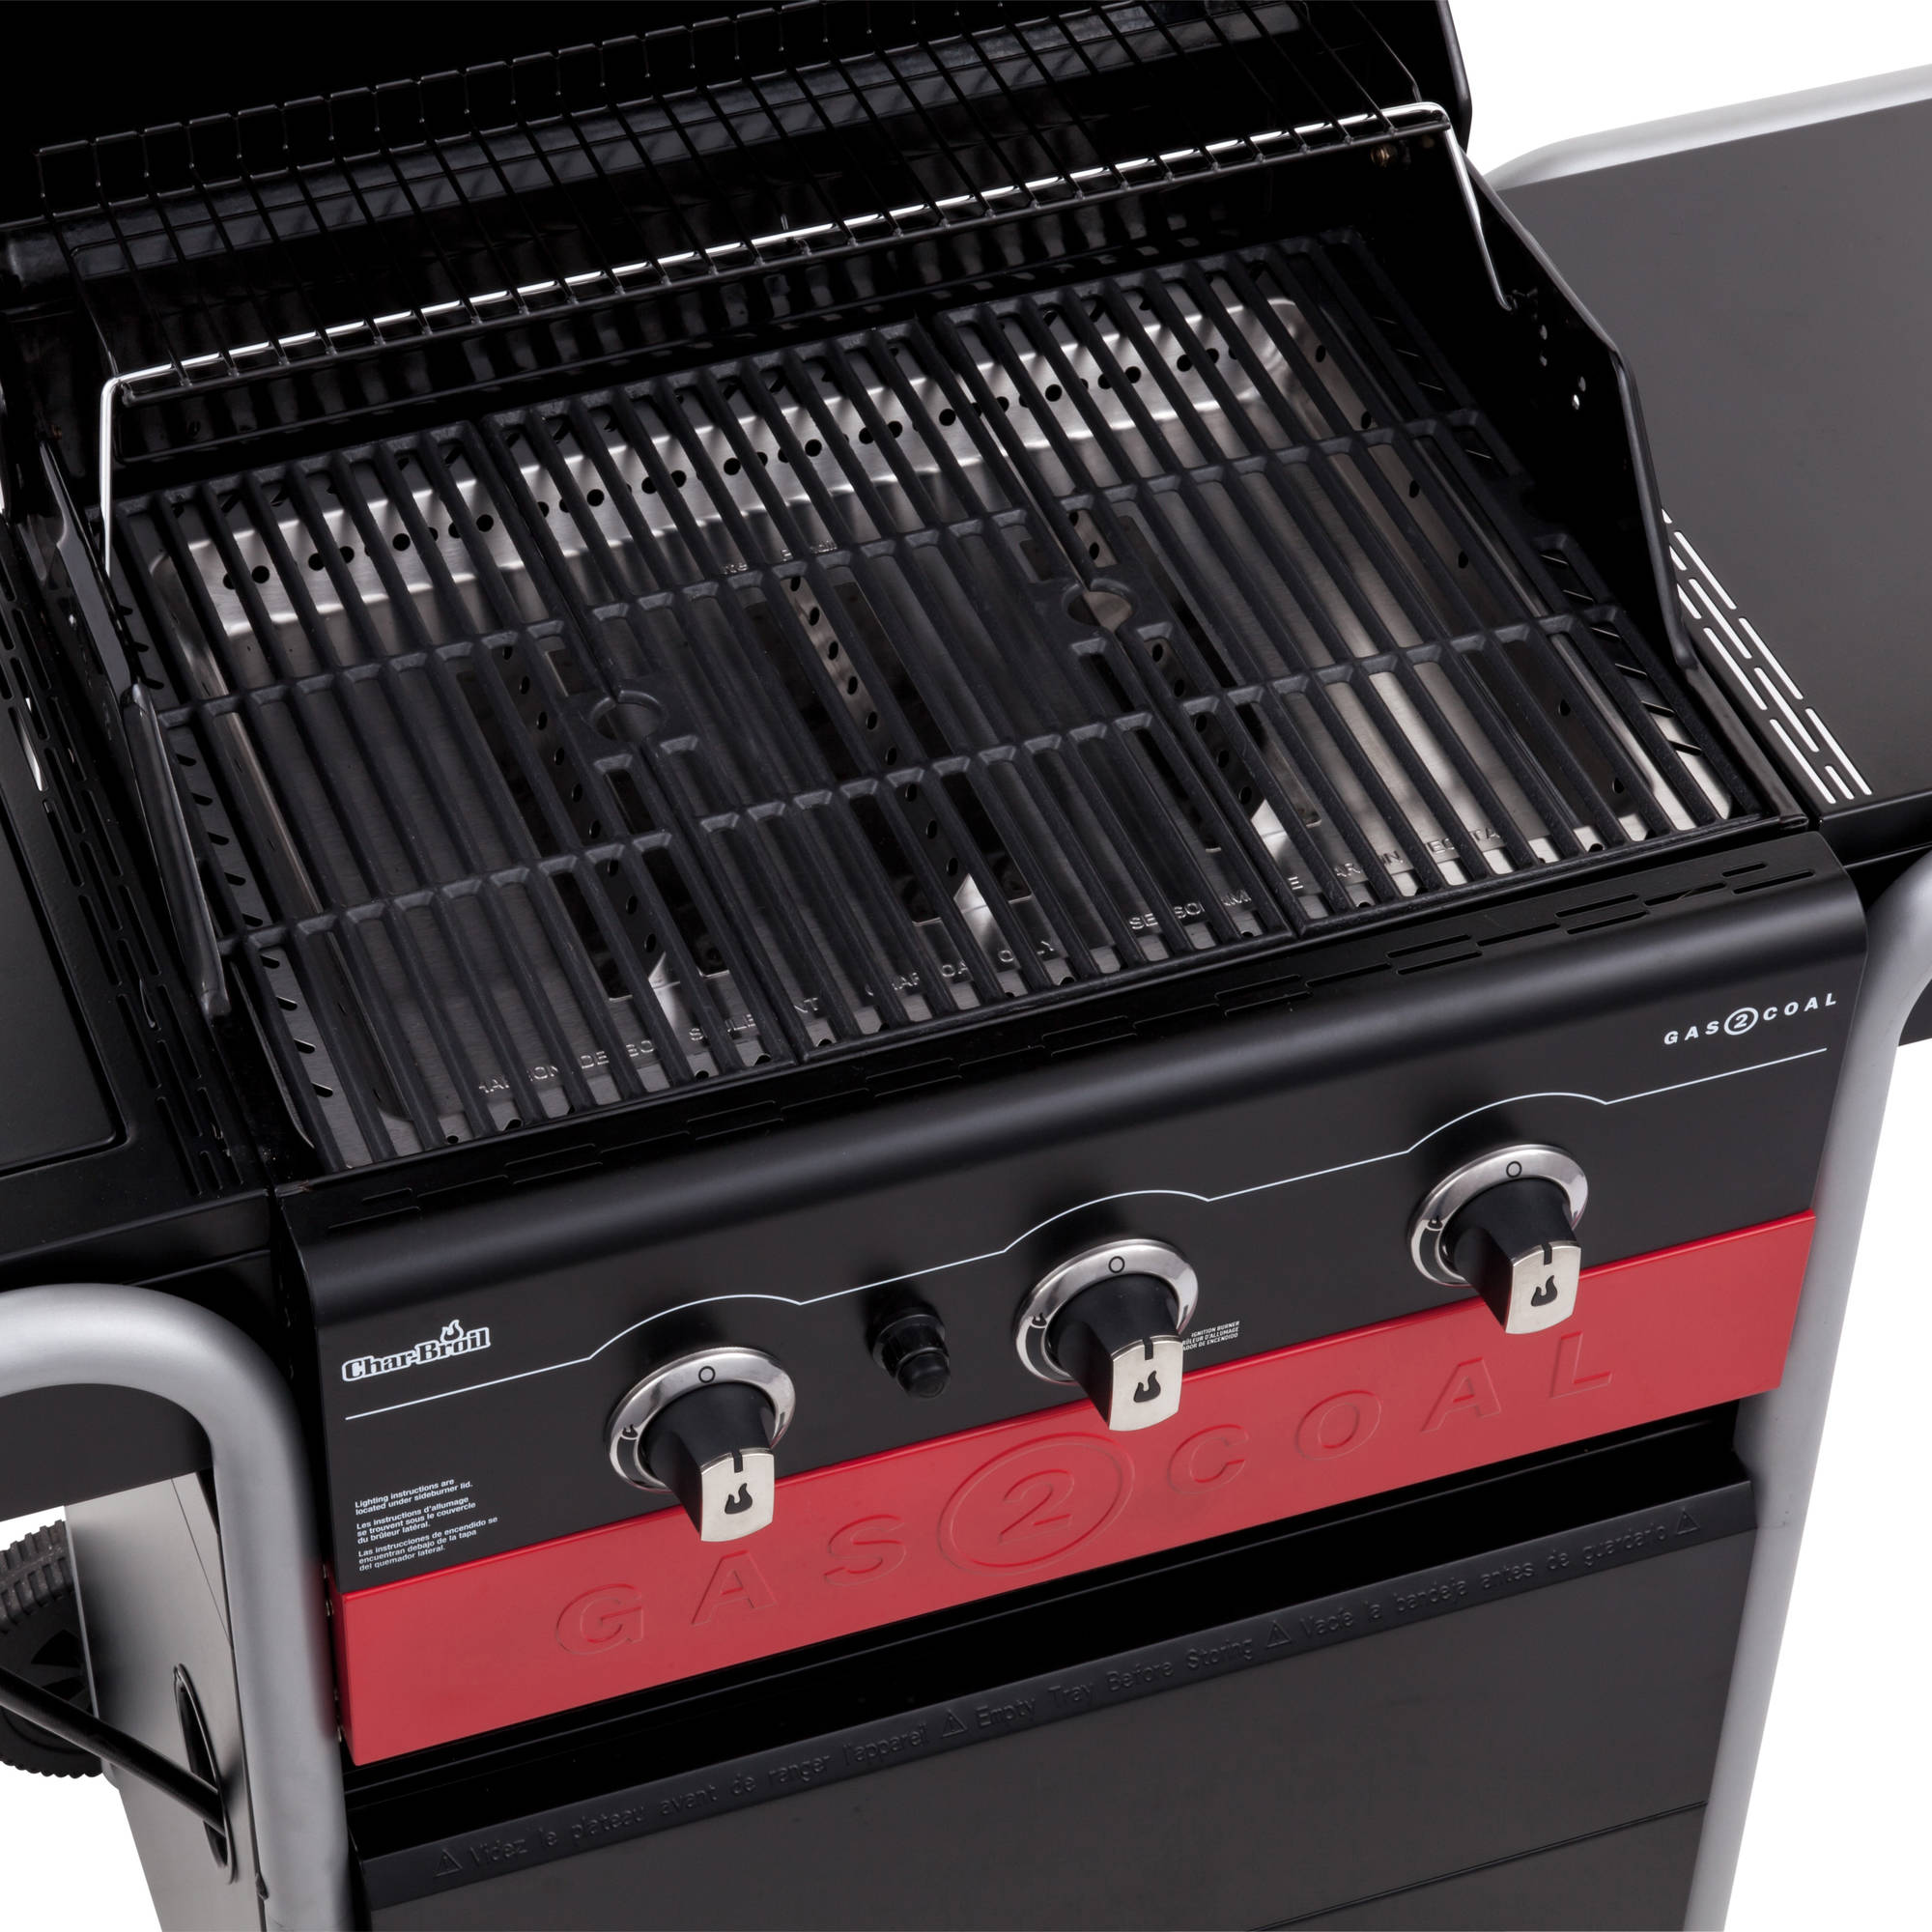 Char Broil Grill Hybrid Gas2coal